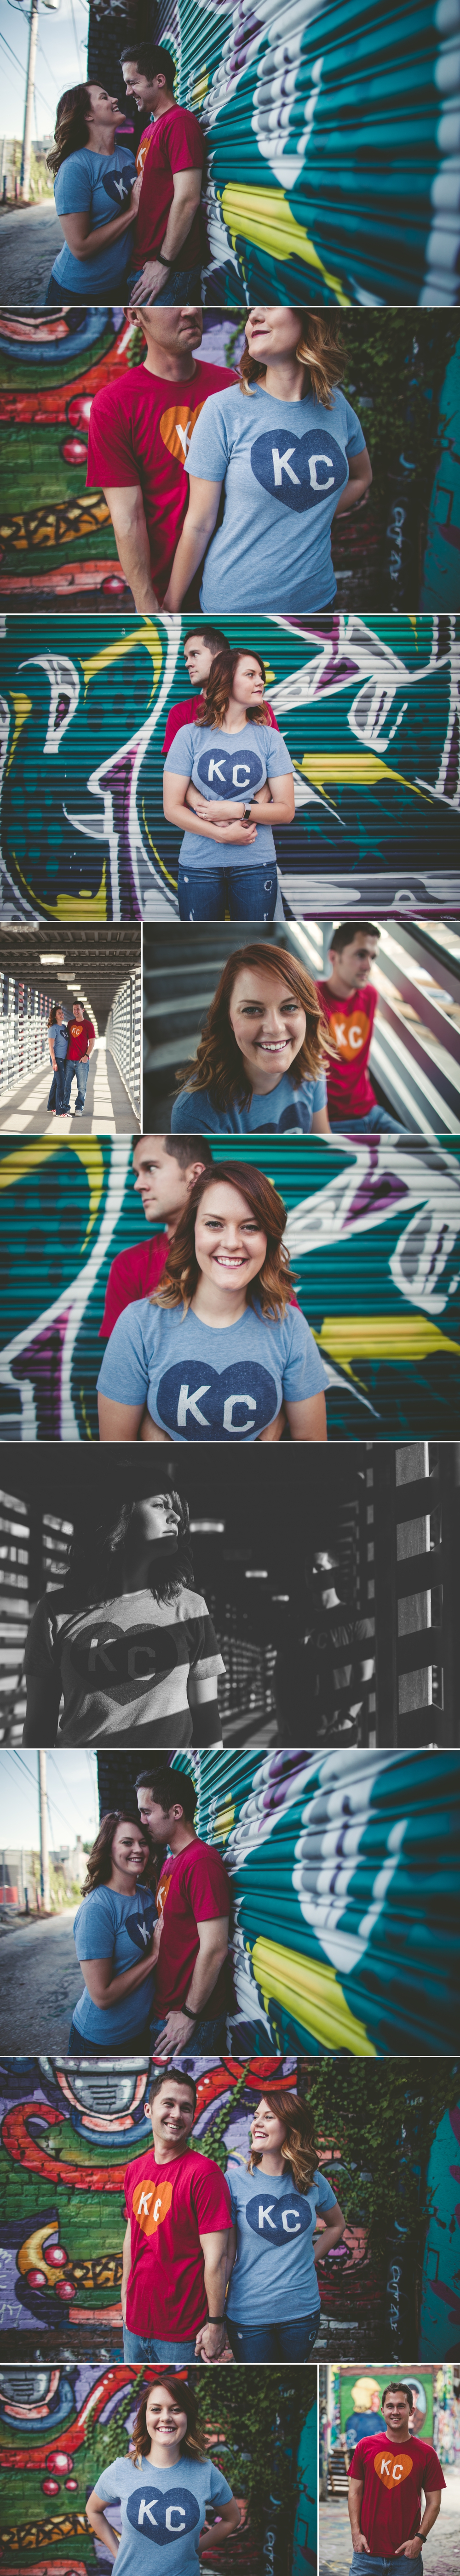 jason_domingues_photography_best_kansas_city_wedding_photographer_kc_weddings_engagement_session_downtown_up_down_arcade_art_alley_0001.jpg